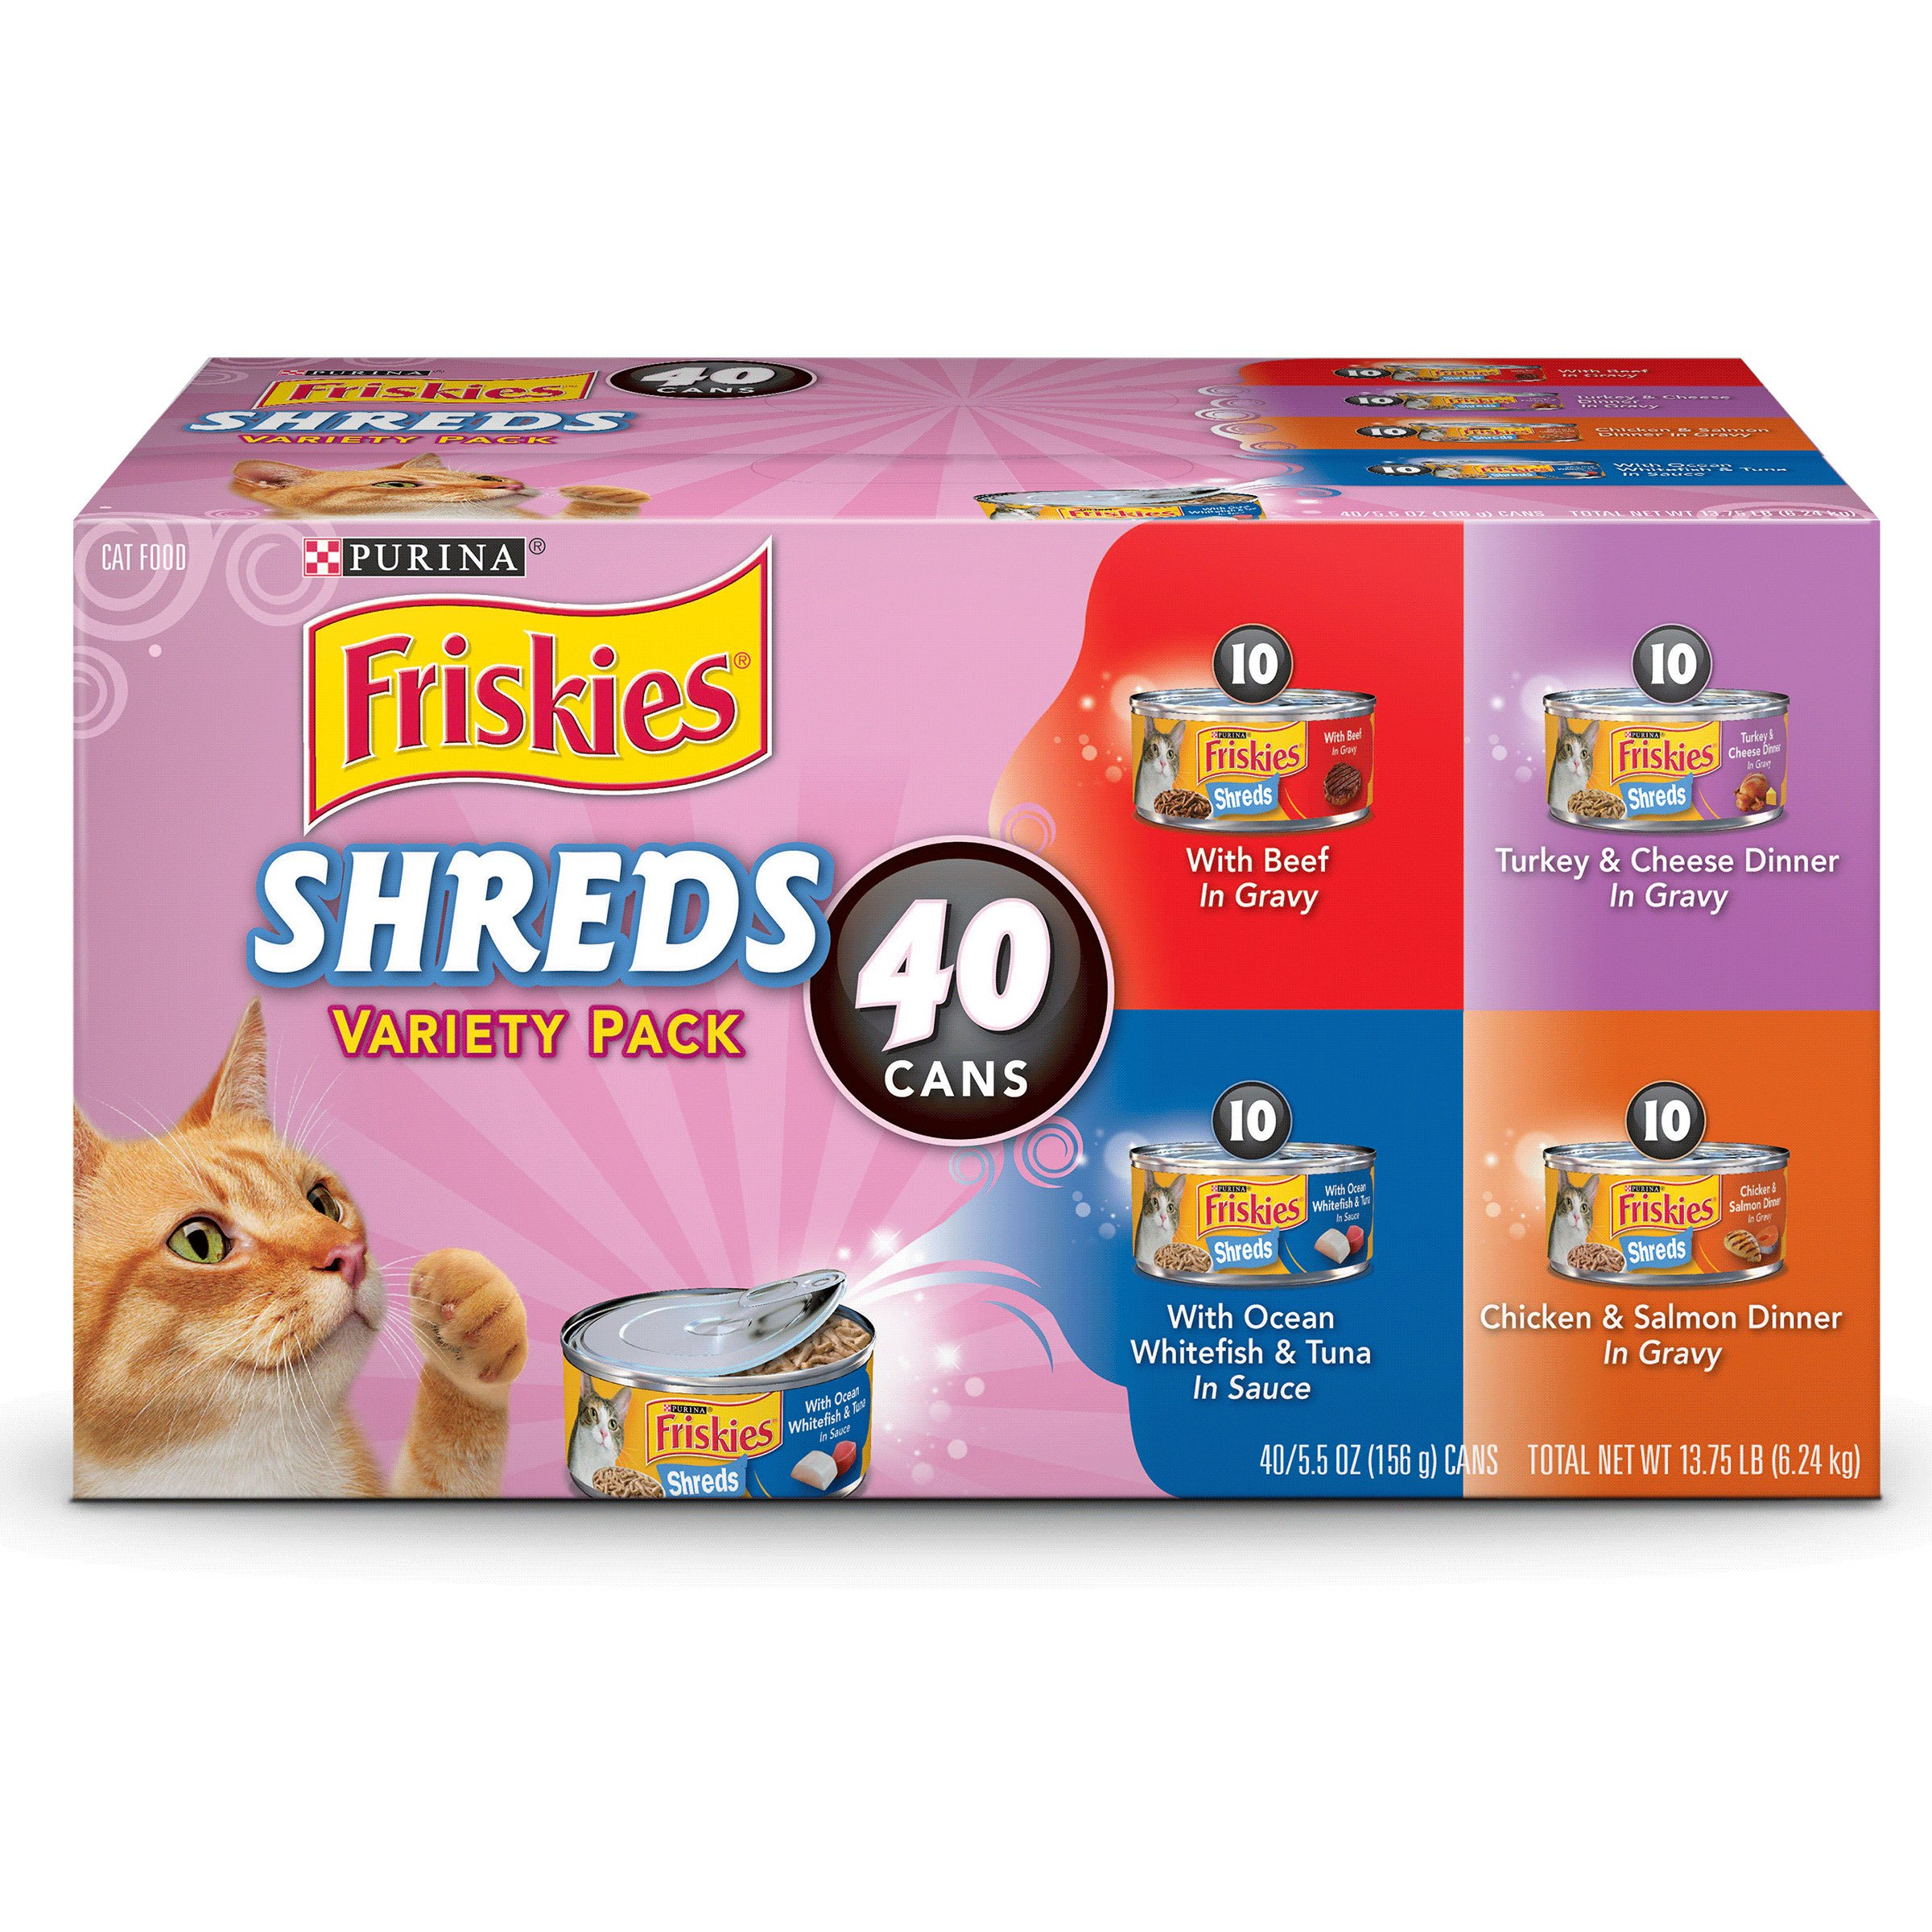 Purina Friskies Shreds in Gravy Adult Wet Cat Food Variety Pack - Forty (40) 5.5 oz. Cans